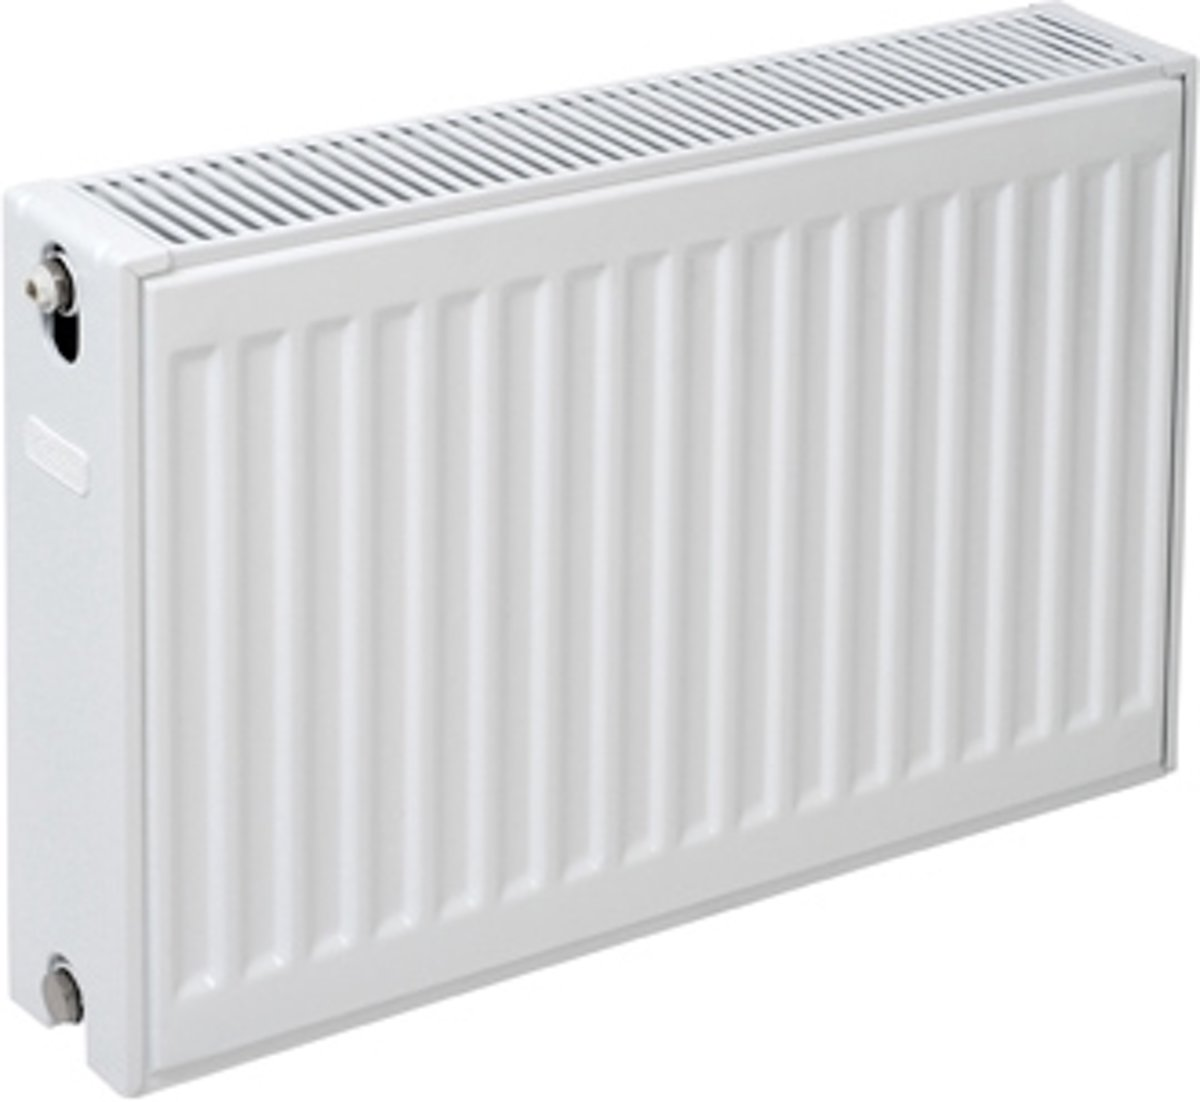 Plieger paneelradiator compact type 22 500x800mm 1219W wit